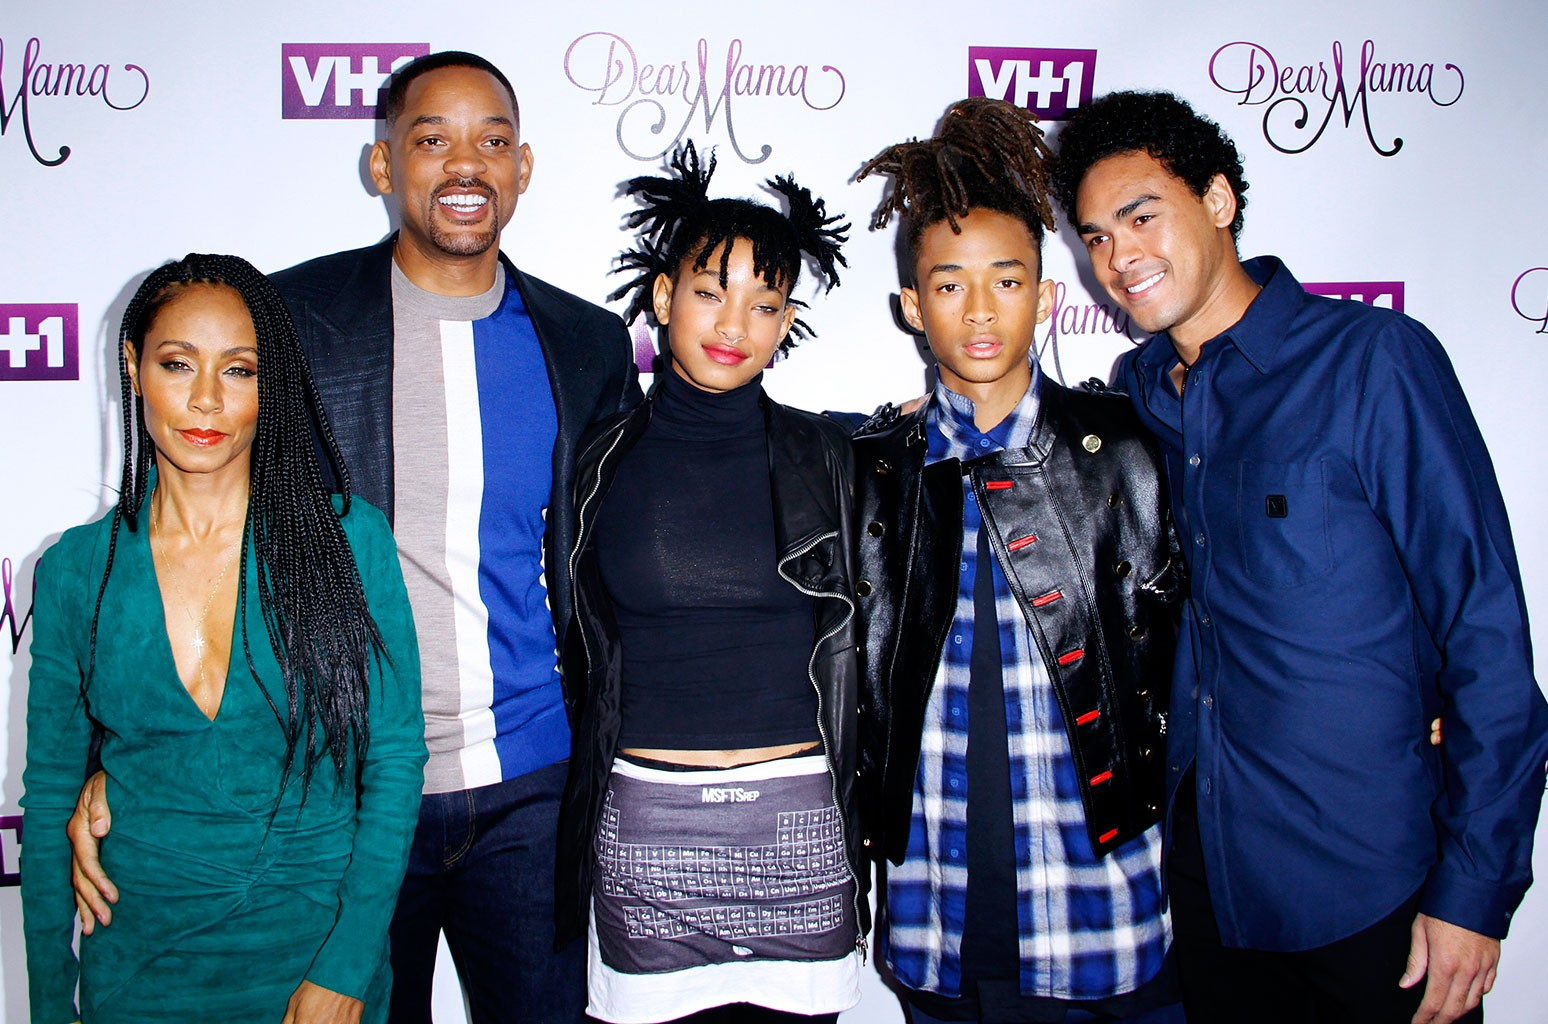 Will Smith and Jada Pinkett Smith Bad Parenting made Kids Well Balanced Adults?